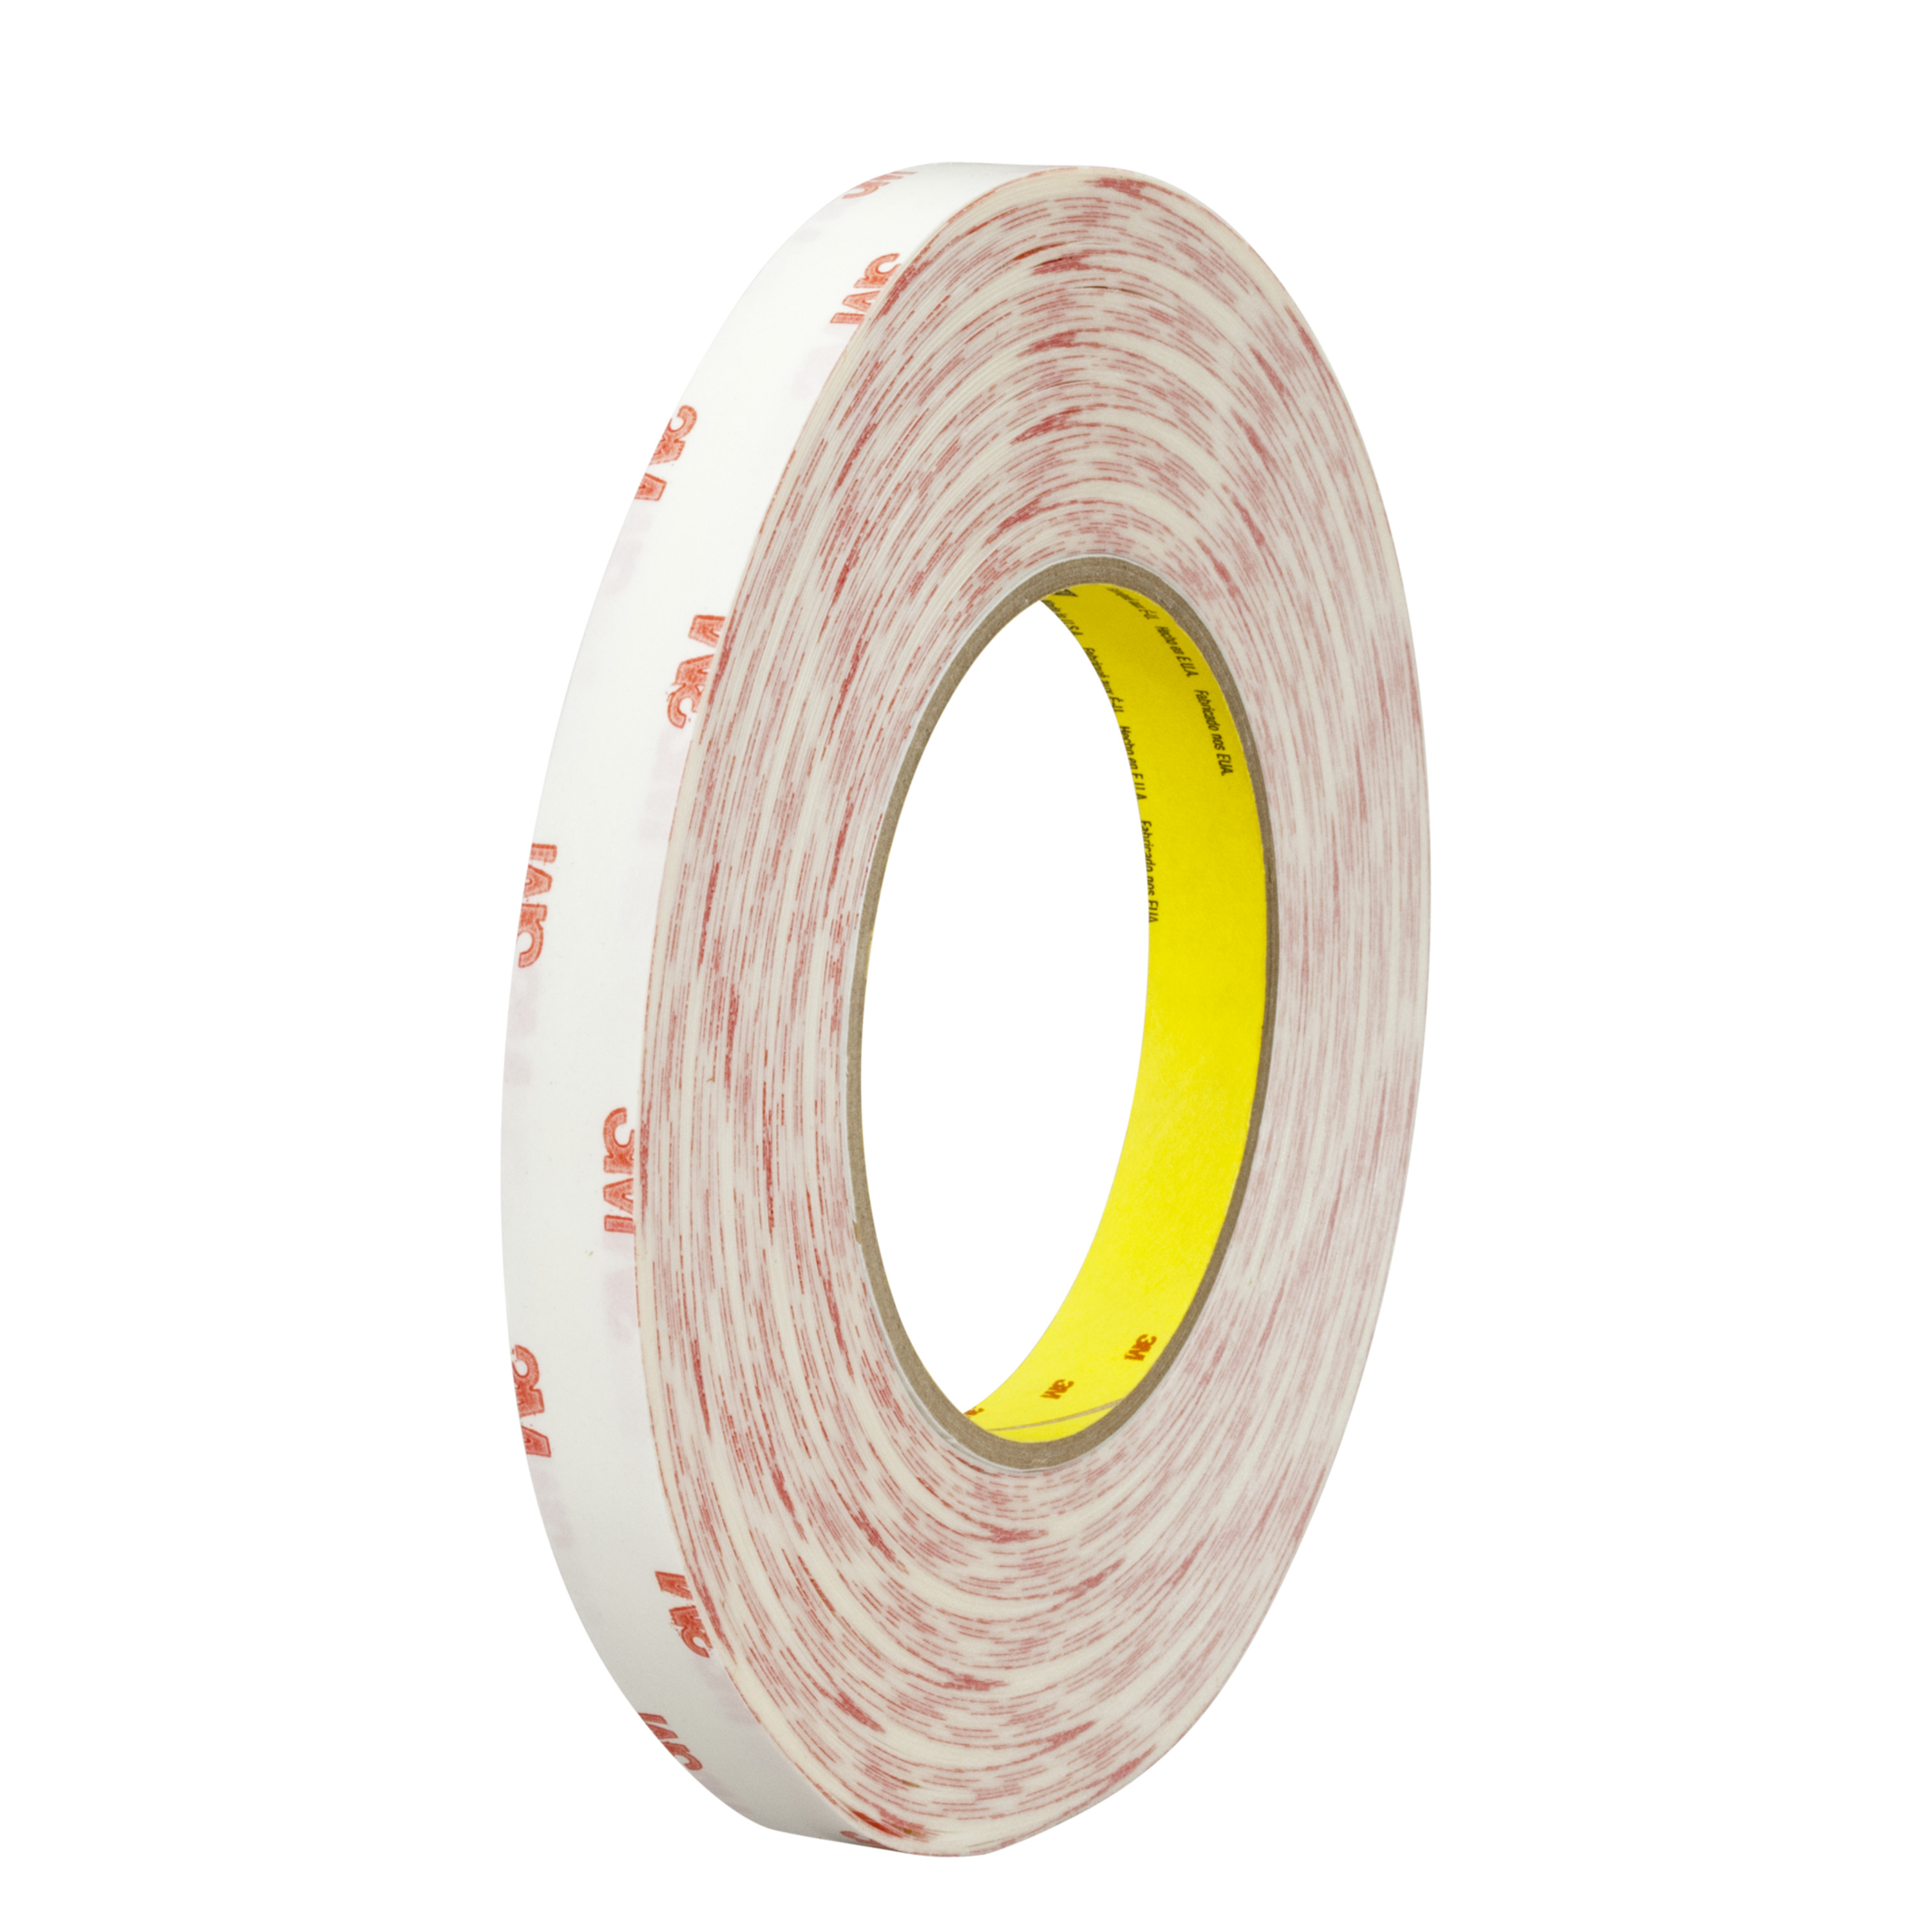 3M™ Double Coated Tissue Tape 9456, Clear, 4 mil, Roll, Config